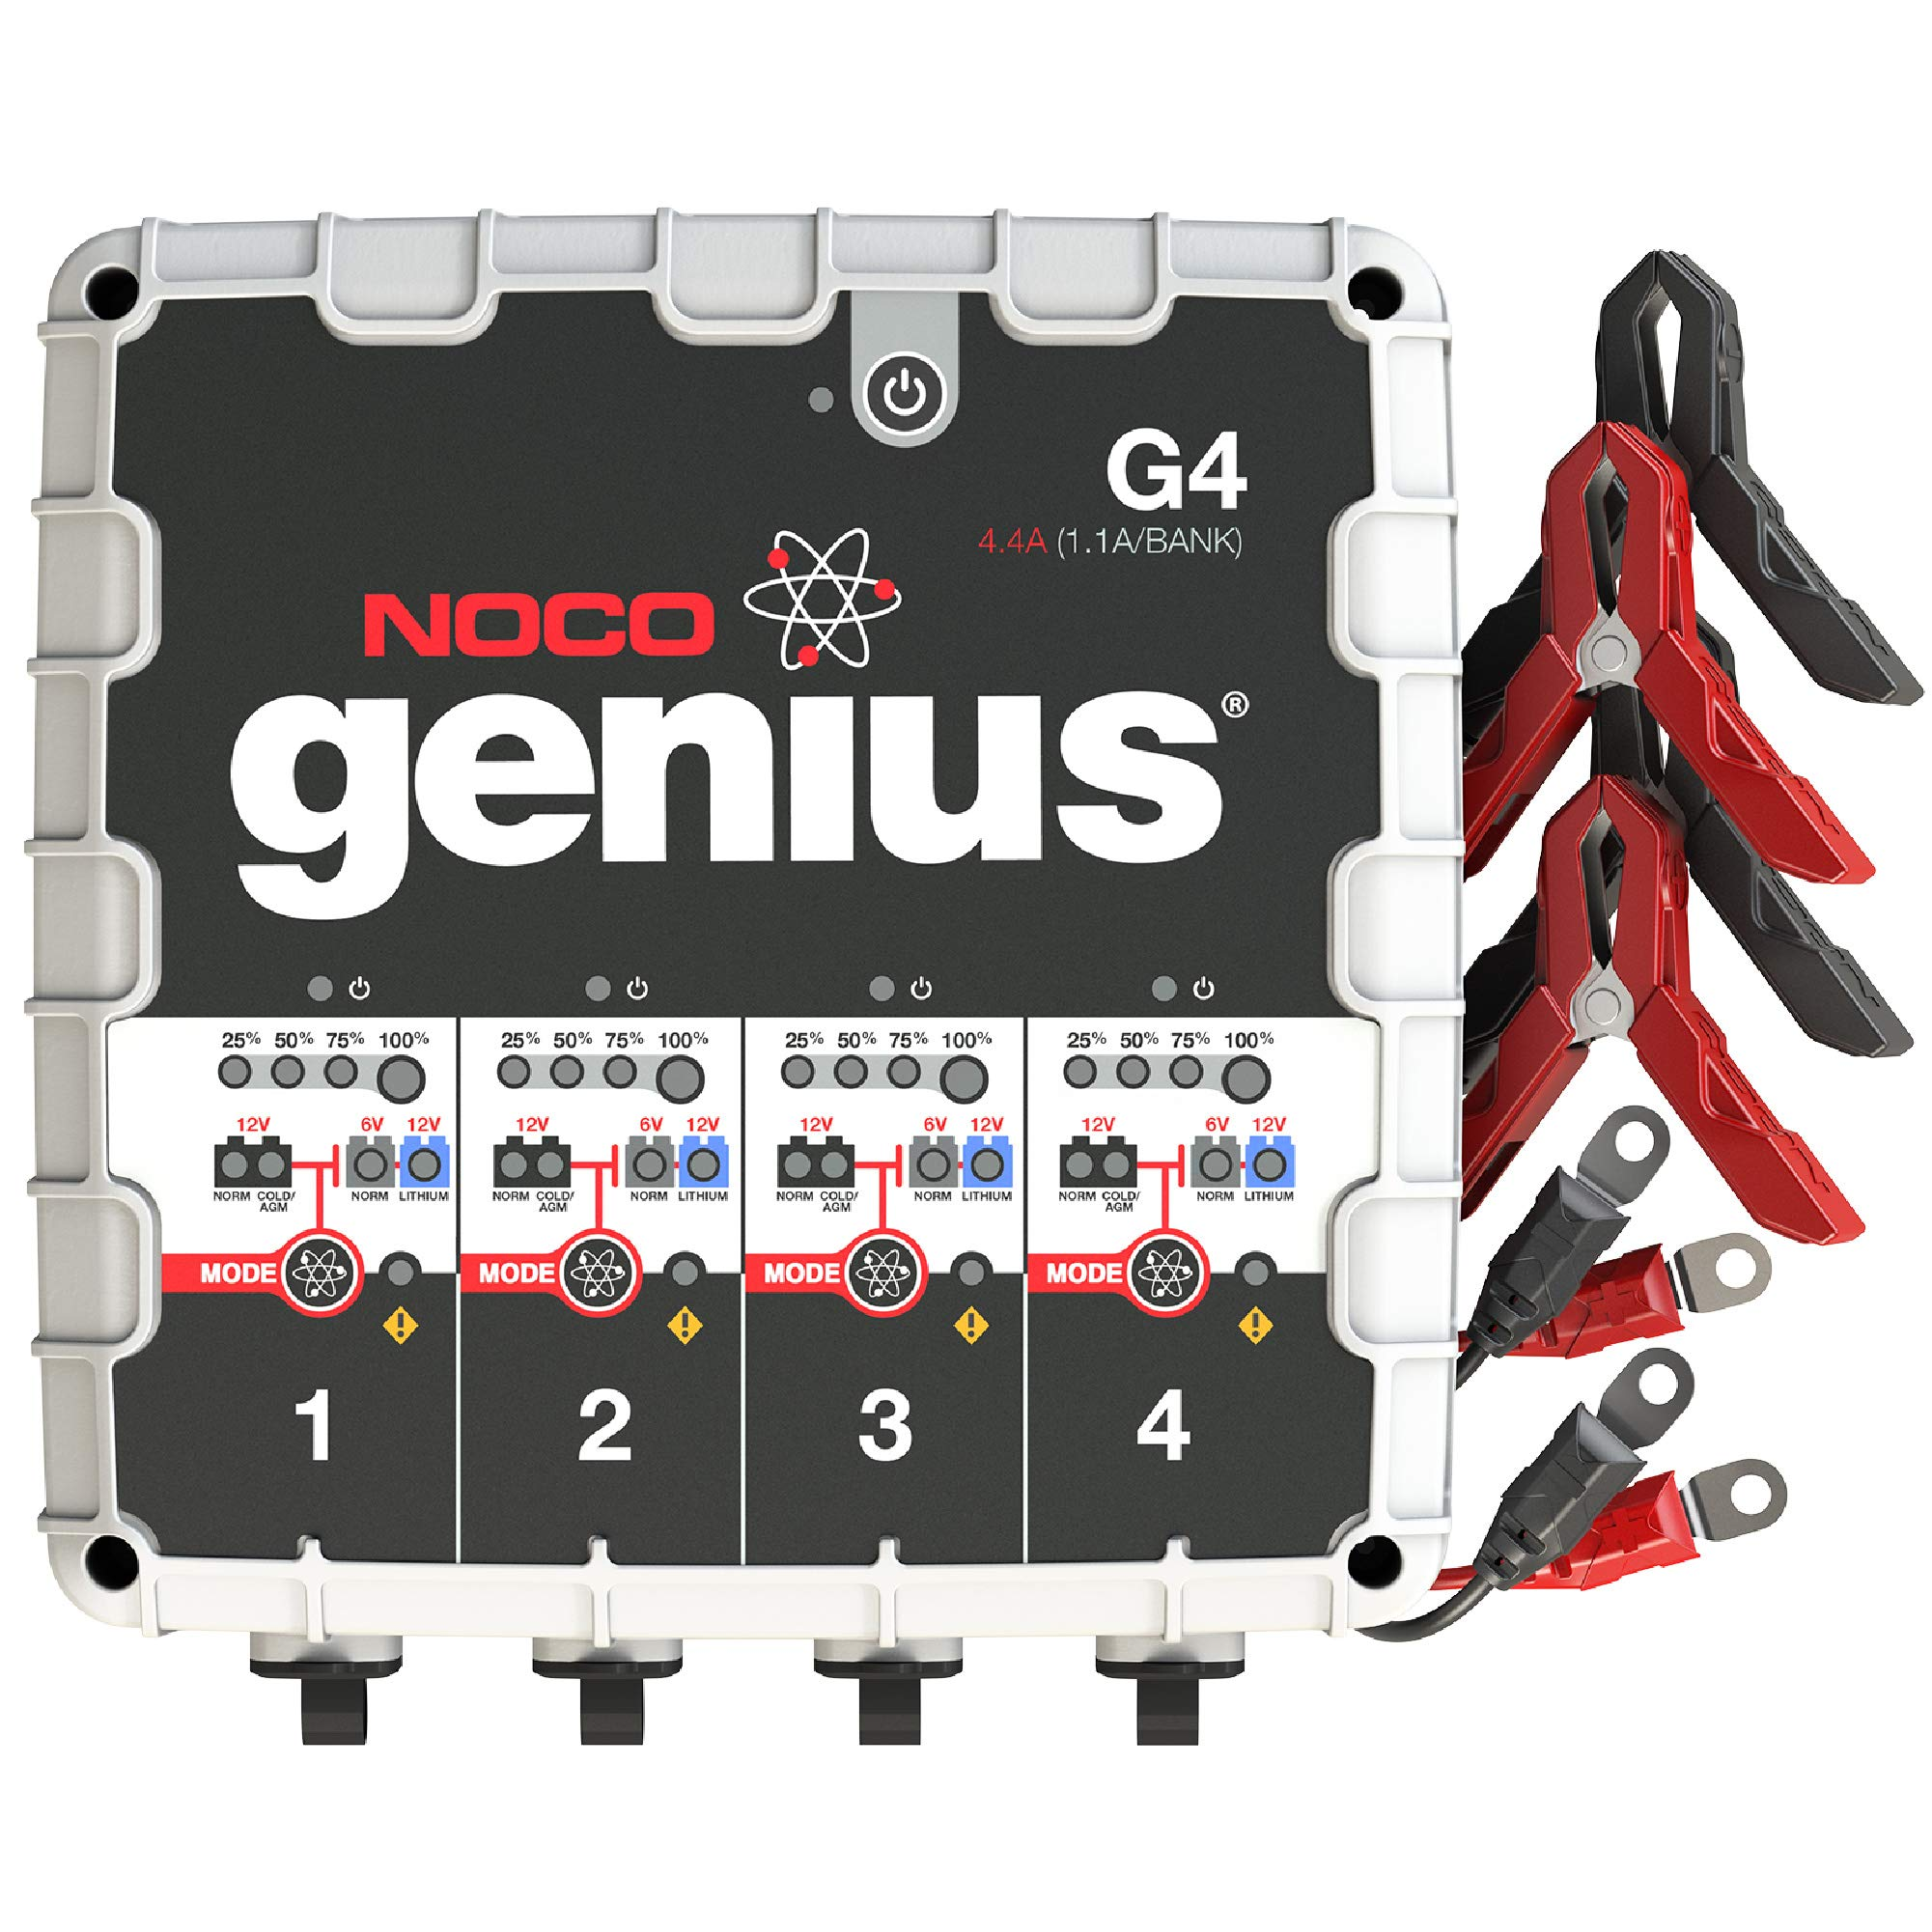 NOCO Genius G4 6V/12V 4.4 Amp 4-Bank Battery Charger and Maintainer by NOCO